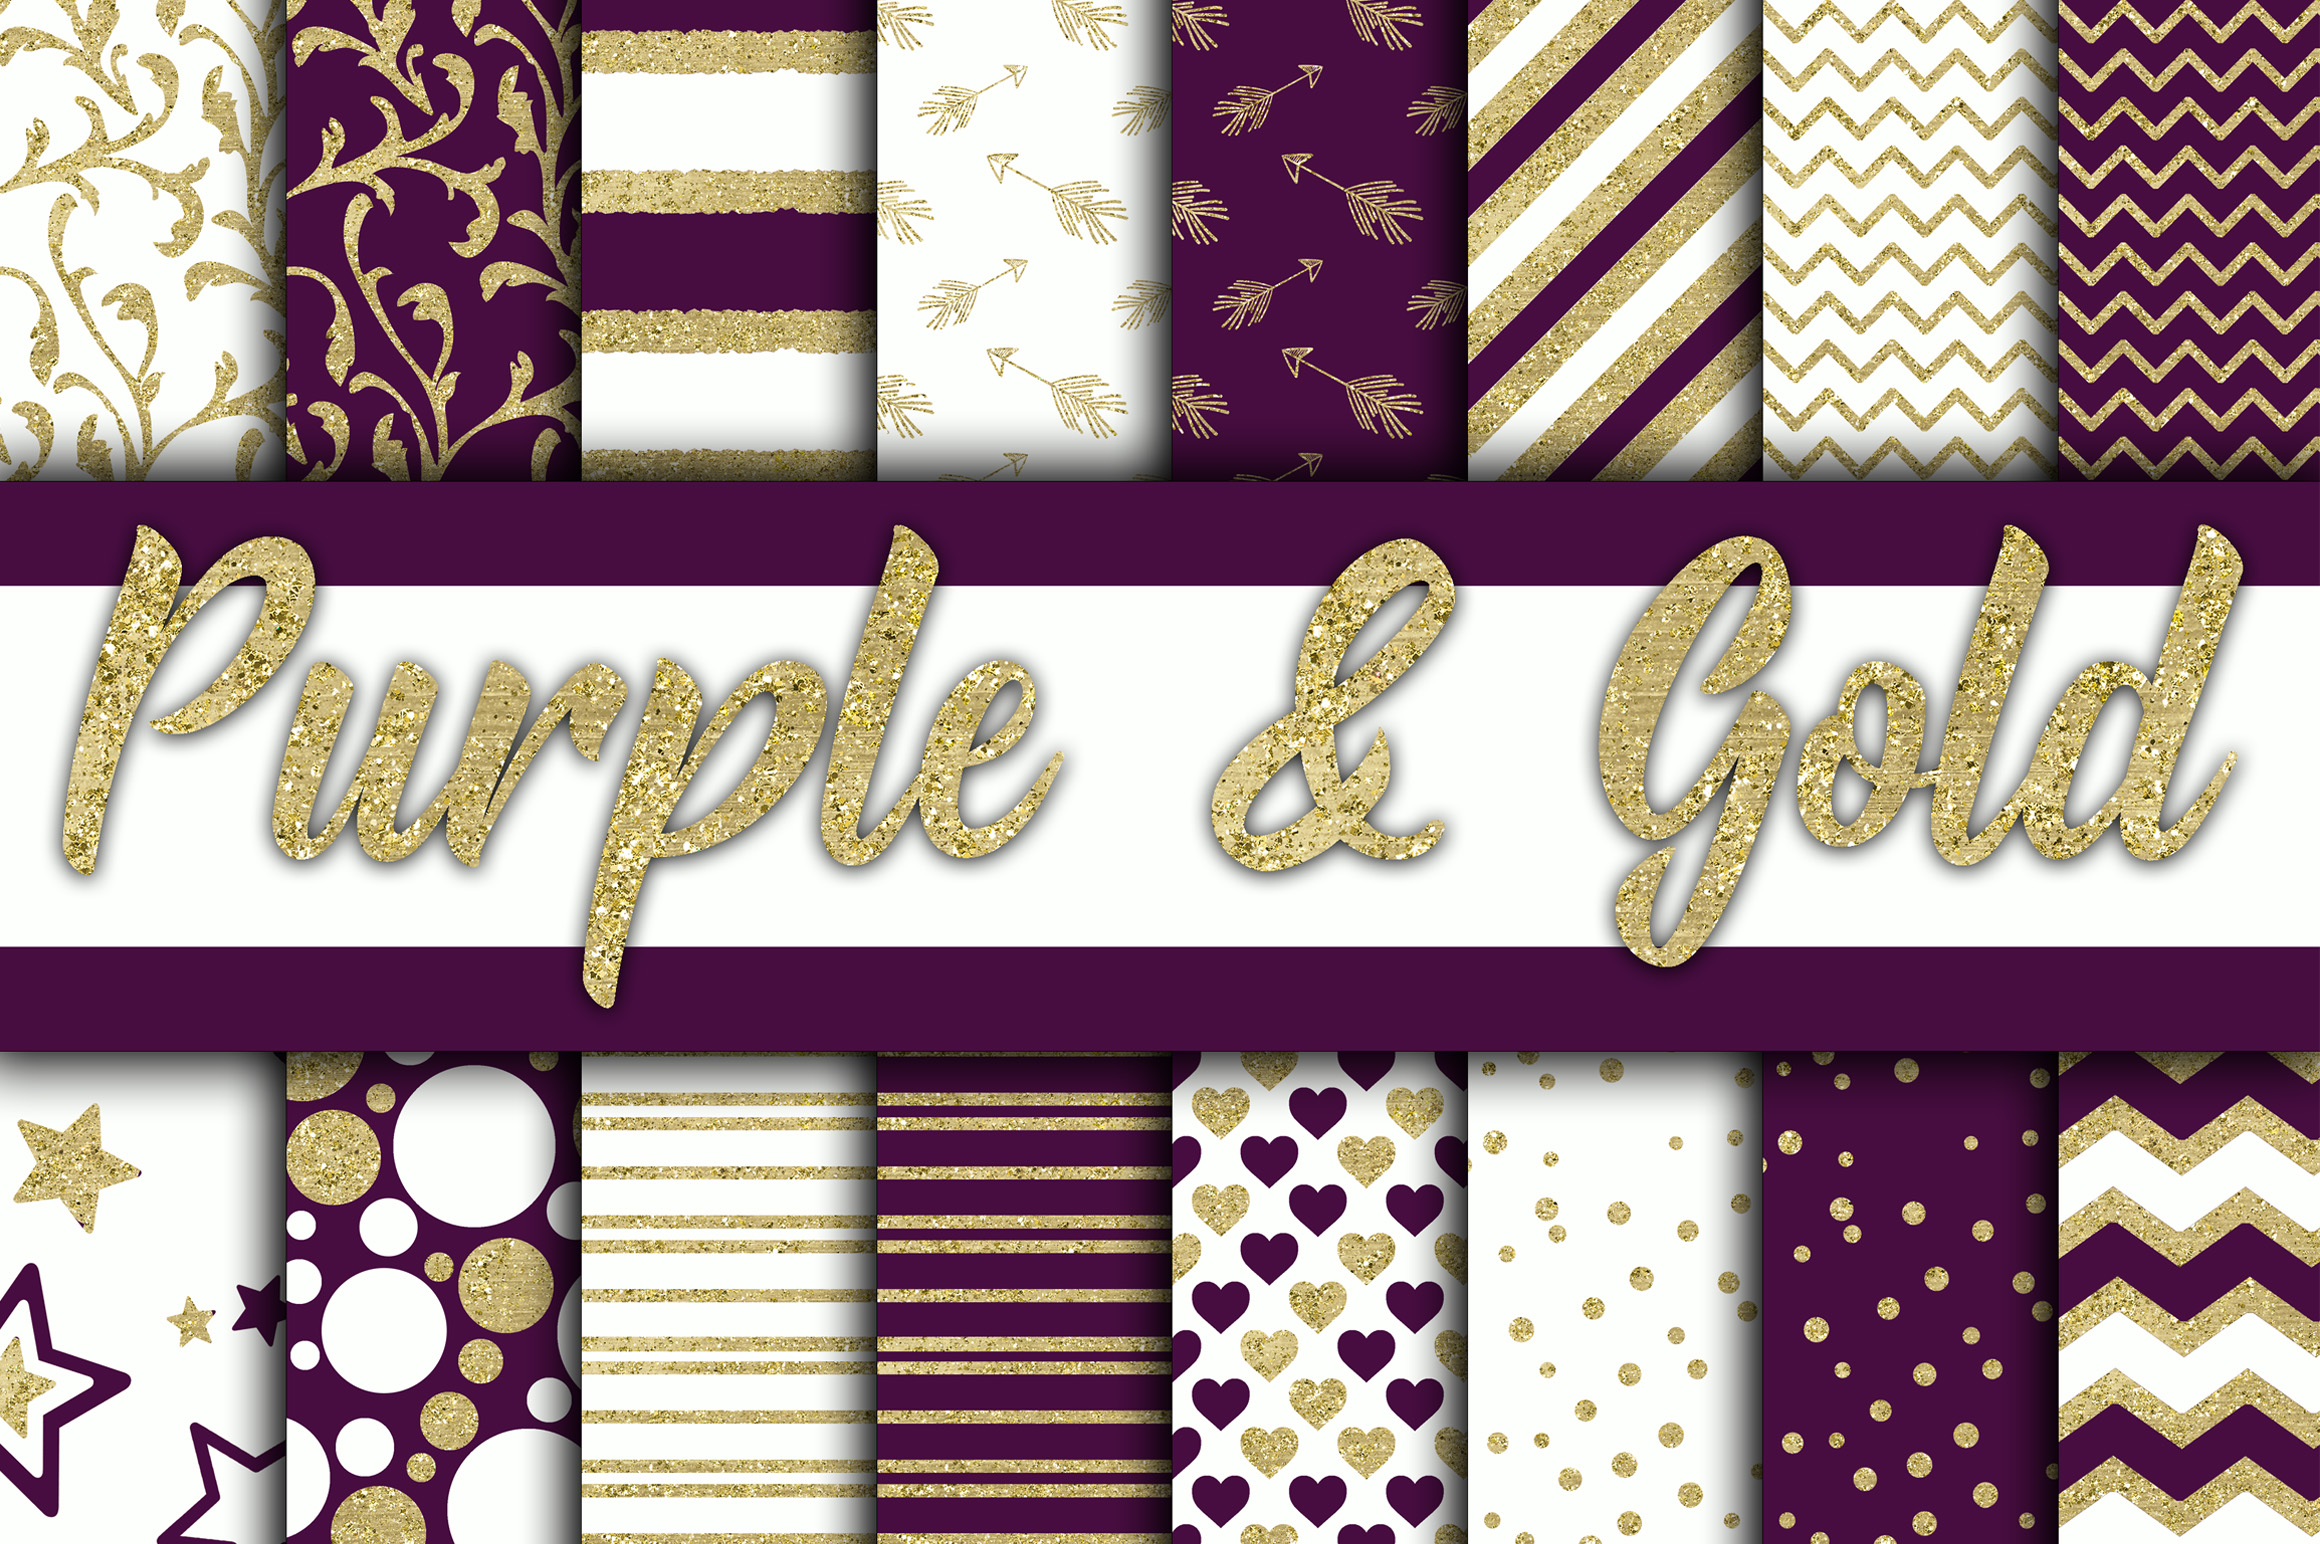 Purple and Gold Glitter Digital Paper Graphic Backgrounds By oldmarketdesigns - Image 1